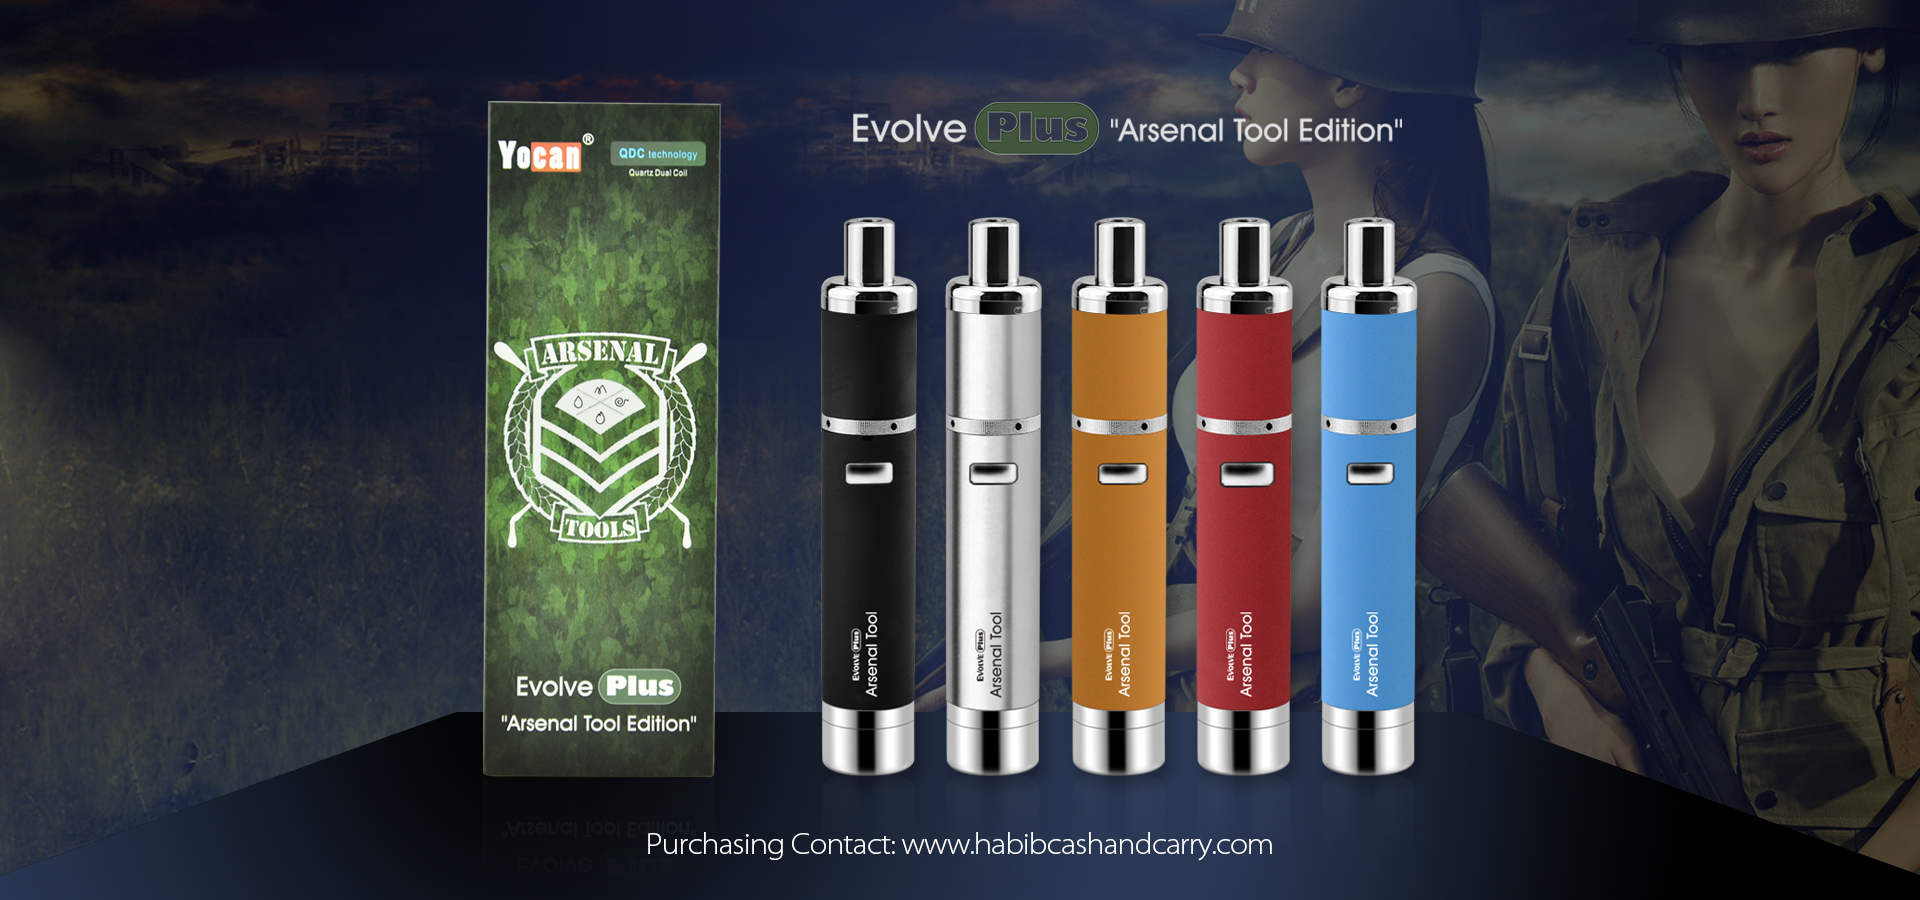 The Yocan Arsenal Edition Evolve Plus Vaporizer is portable, powerful and includes a cool rifle dab tool.